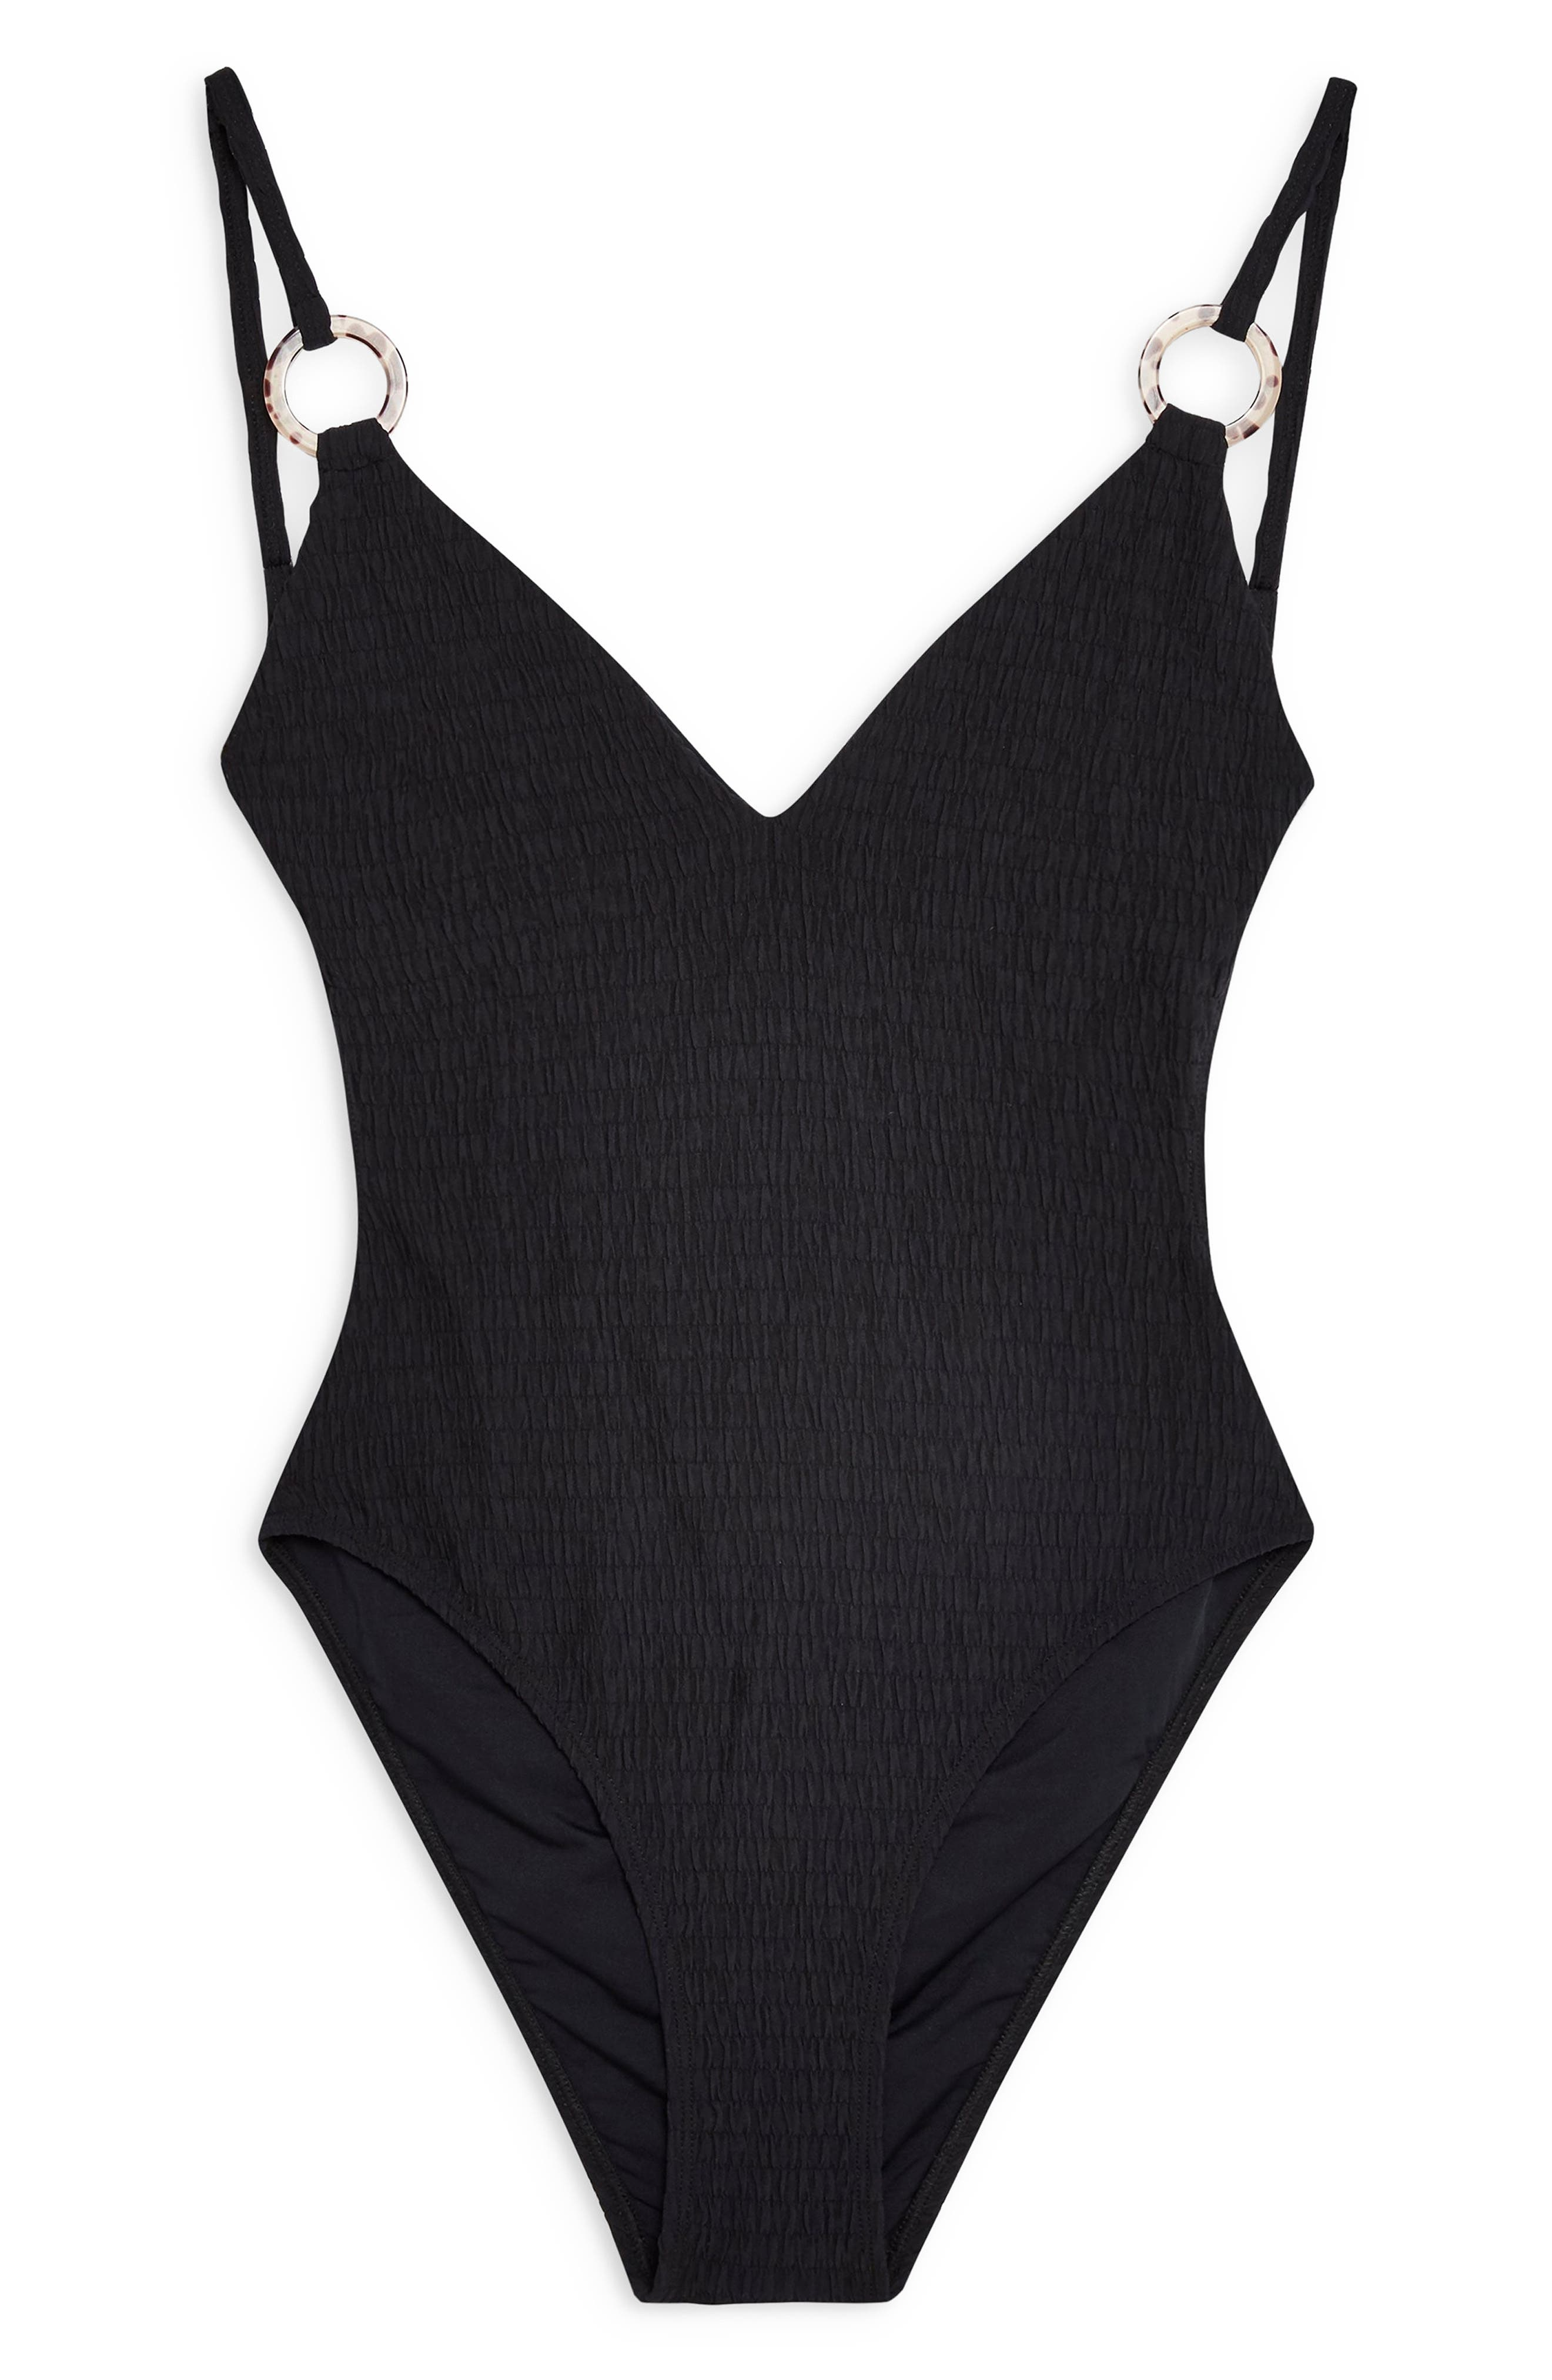 Topshop Plunge One-Piece Swimsuit, US (fits like 6-8) - Black